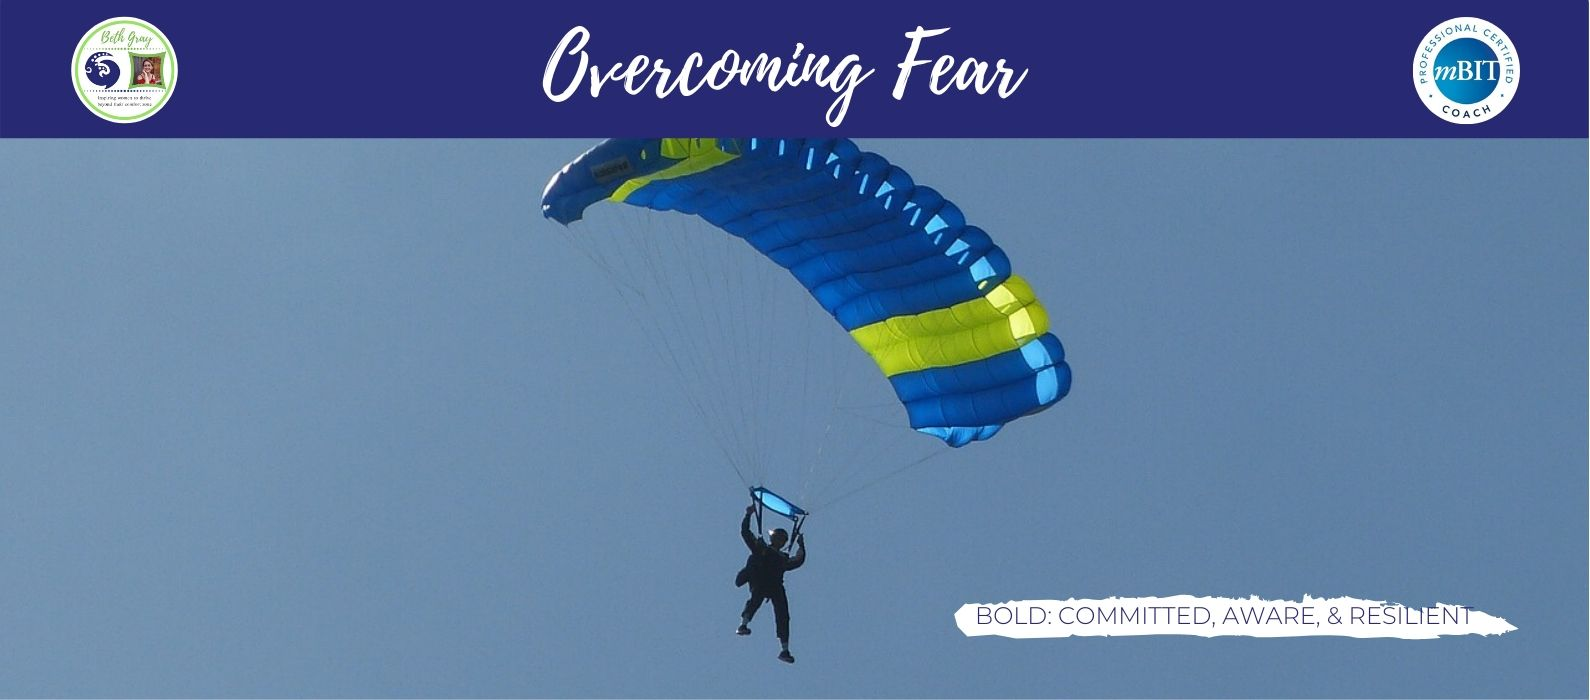 overcoming fear, find the hidden treasures, generate fear, take action, what causes fear, fear as an emotion, trapped, immobilised, overthinking, healthy fear, acting in spite of fear, the way is through the fear, on the other side of fear